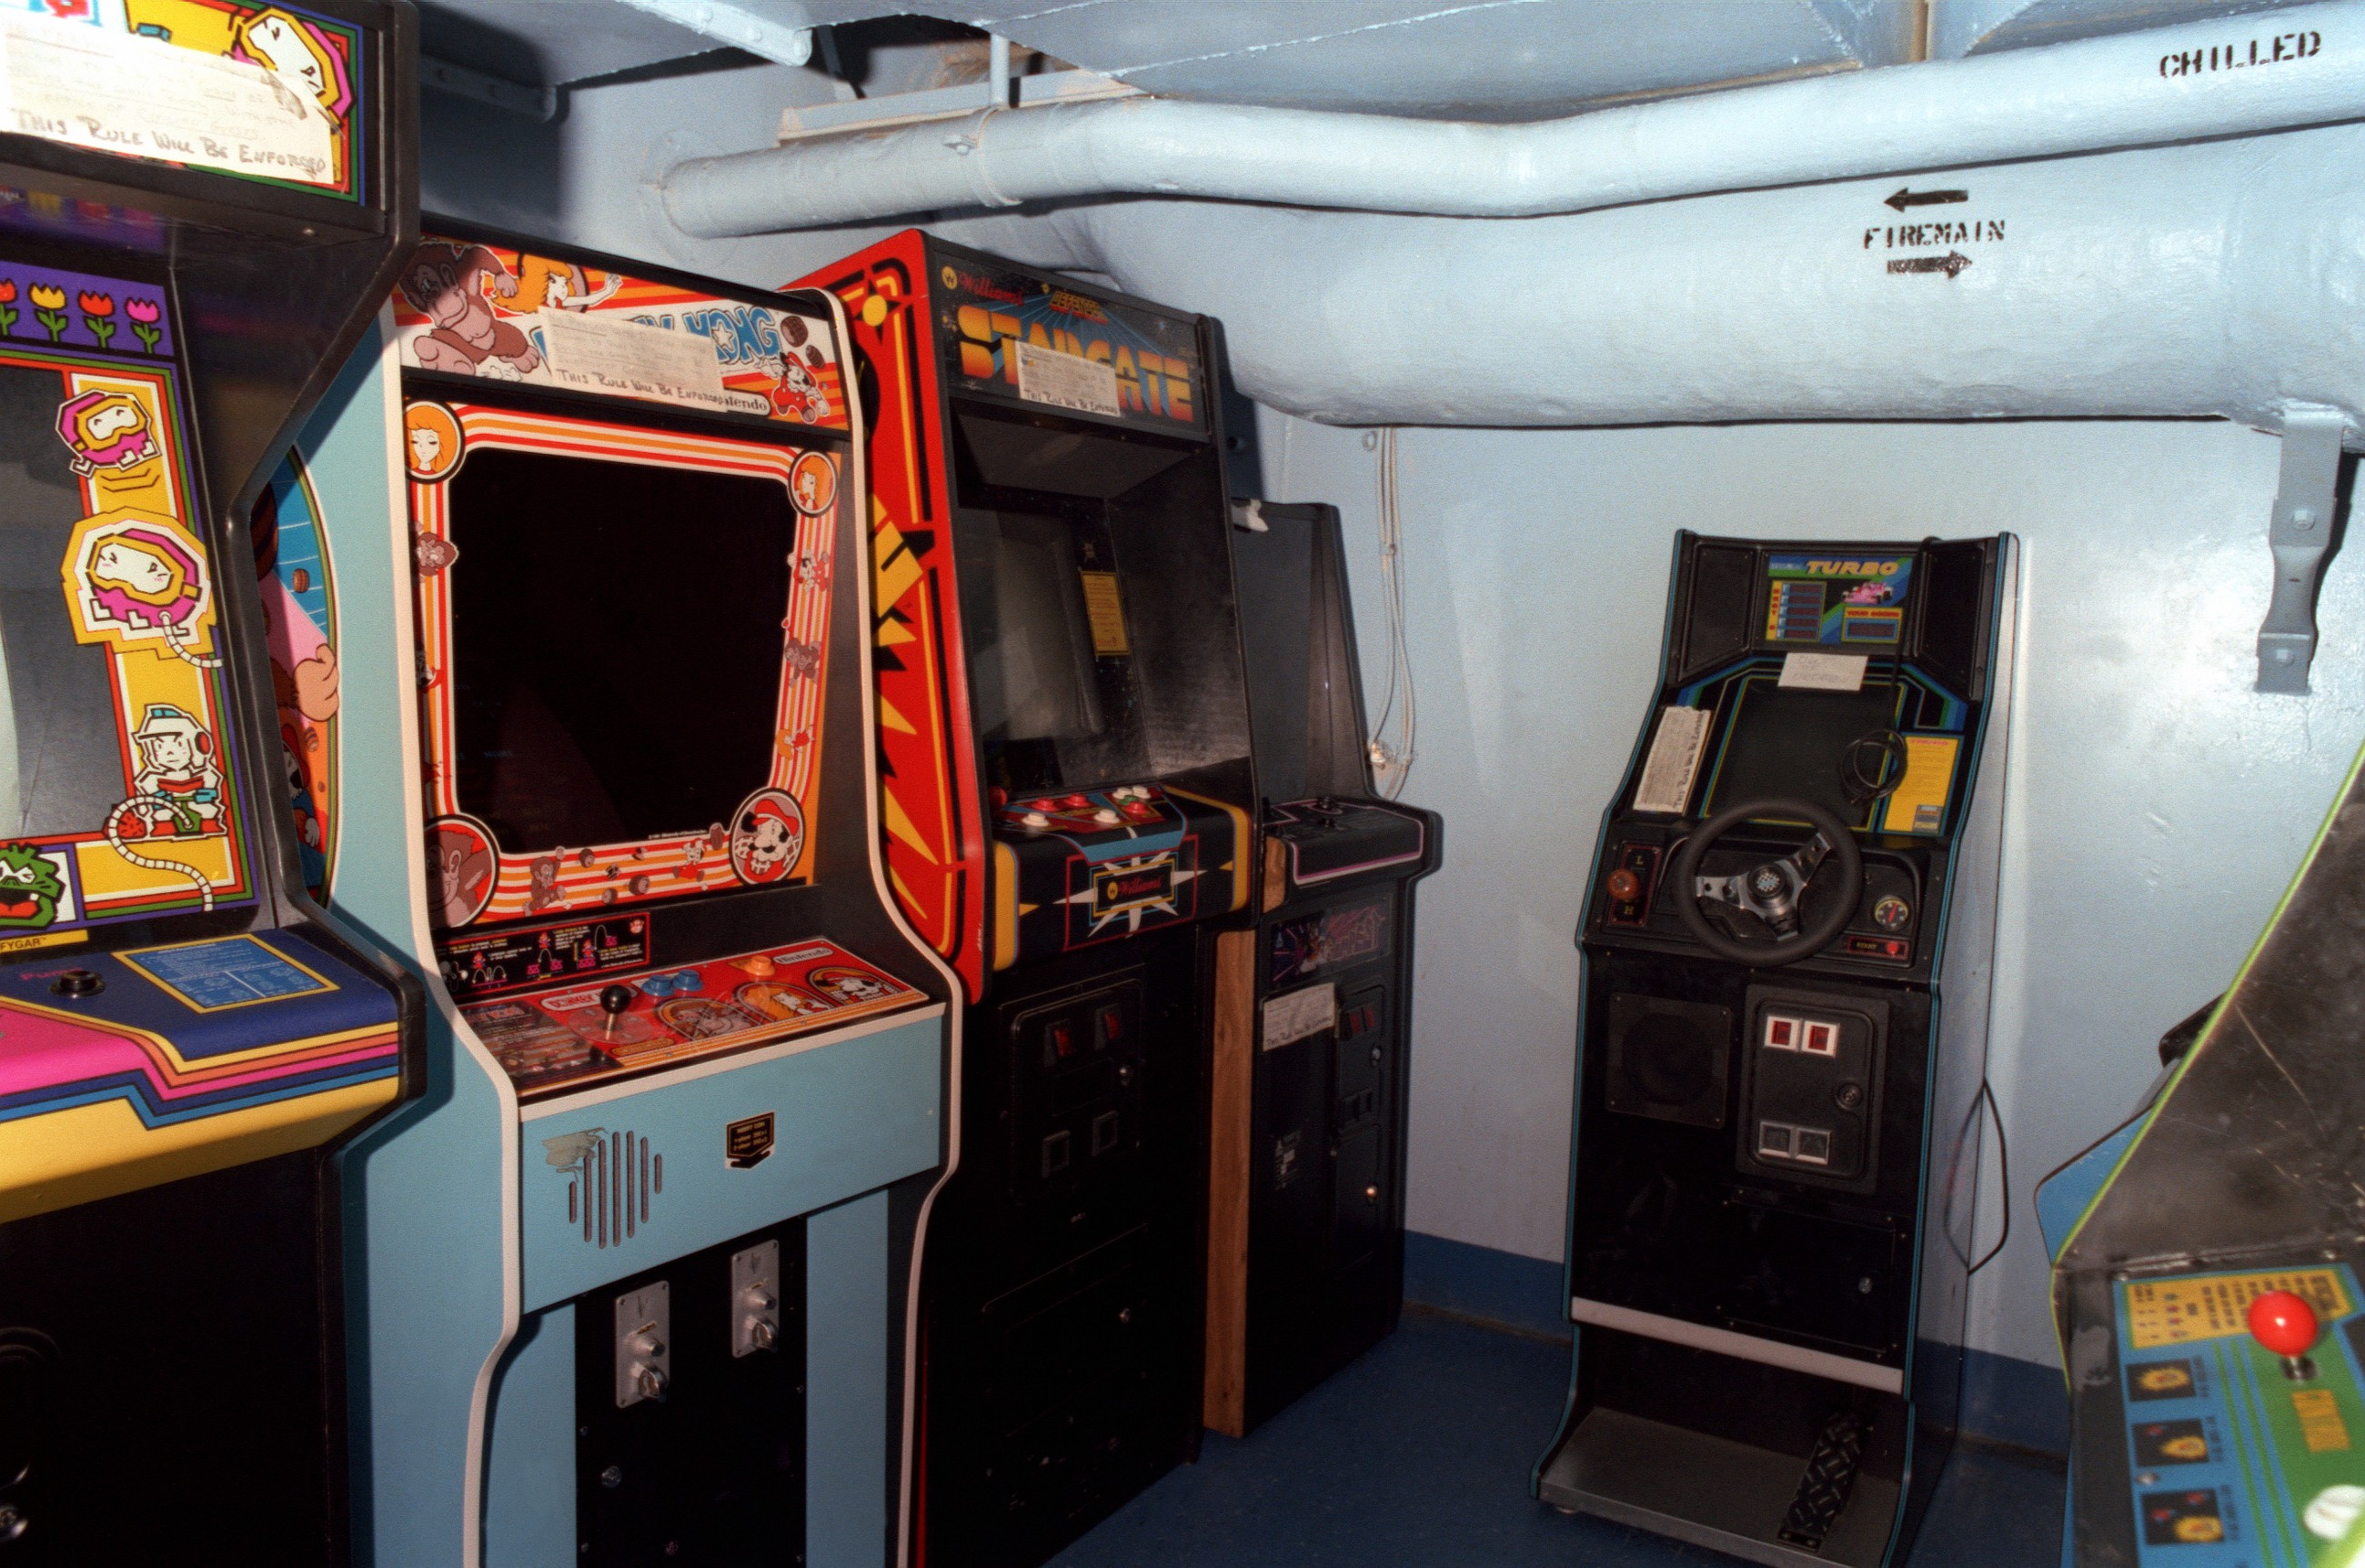 A Video Arcade Aboard The USS Enterprise Aircraft Carrier 1982 National Archives